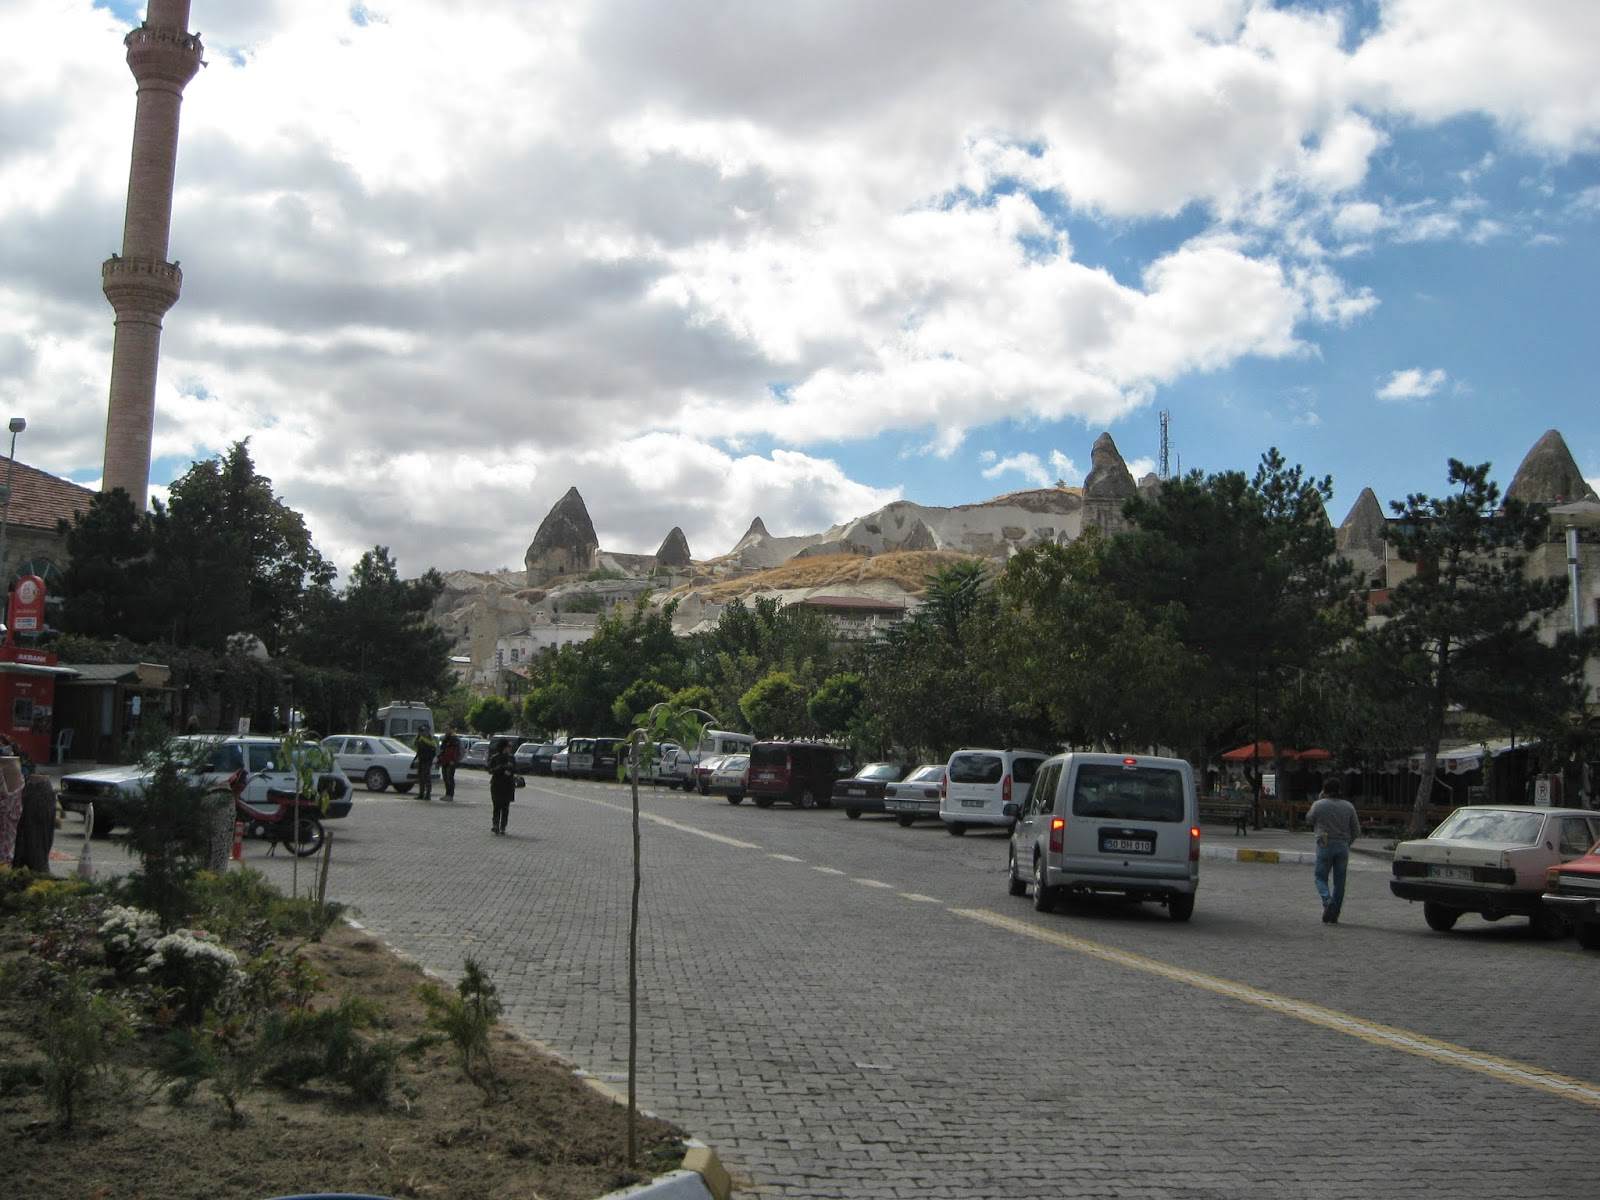 Cappadocia - Caves and city streets